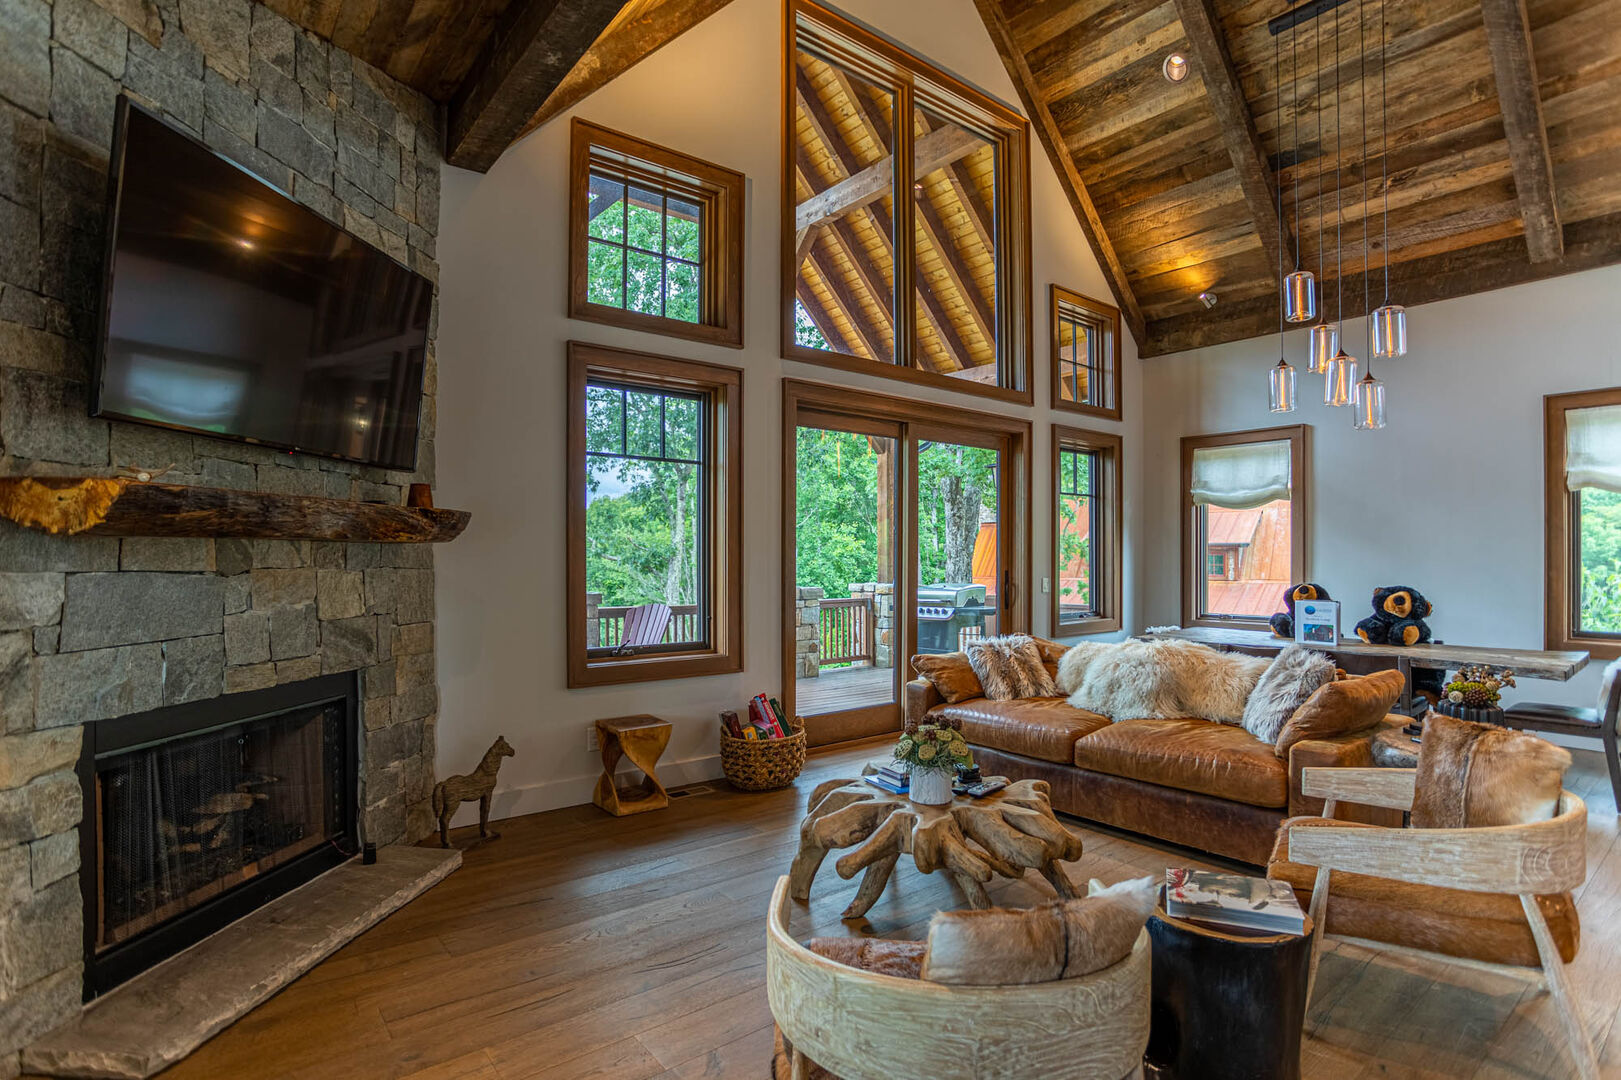 Blue Ridge Mountain Rentals: Storybook Cottage in Eagles